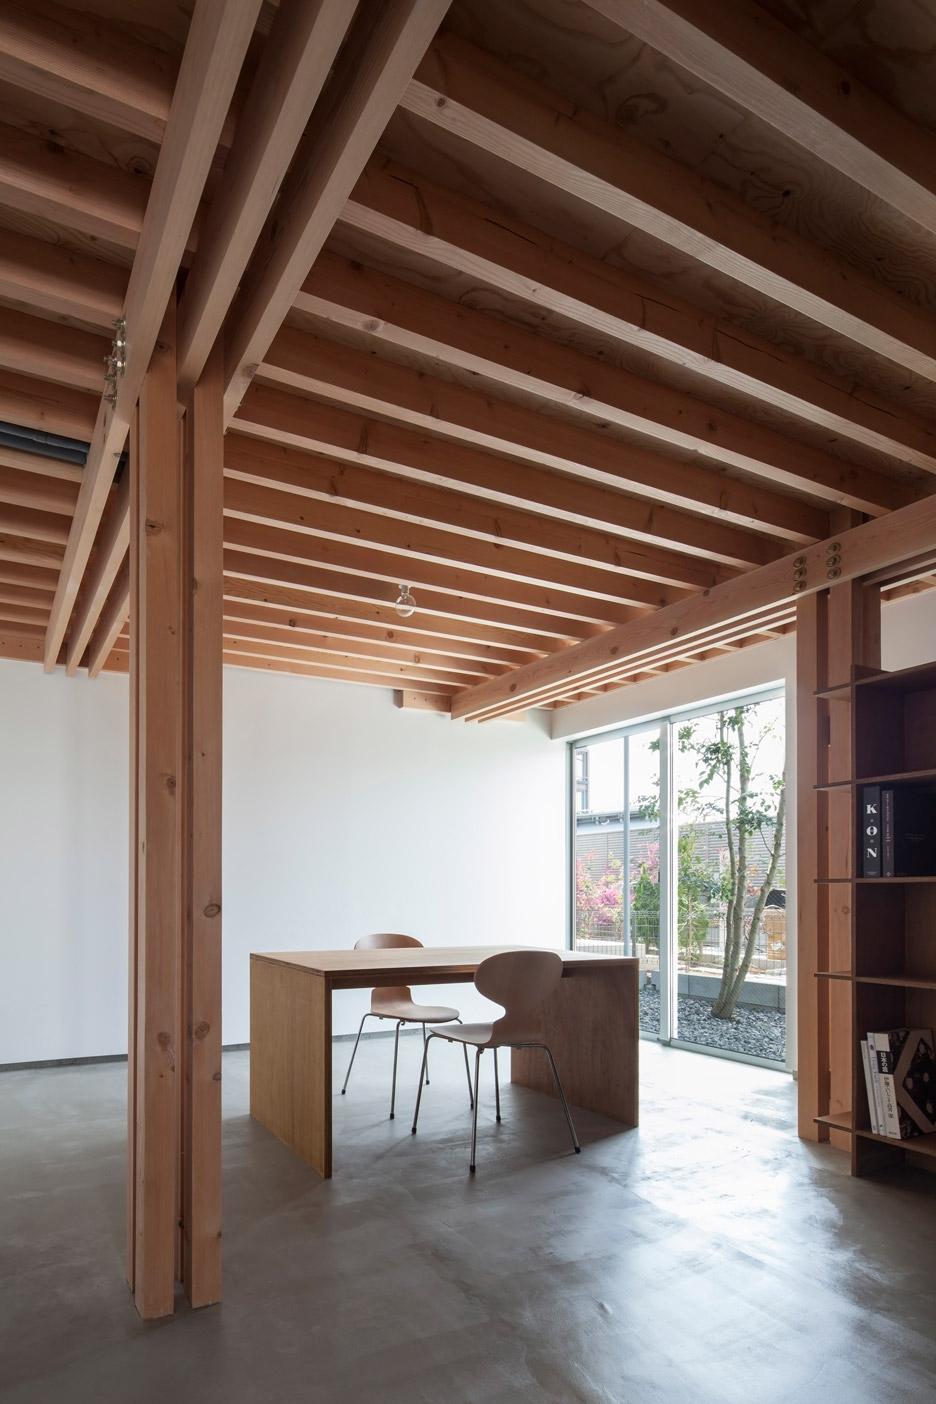 FT Architects 4 Columns house features a timber frame